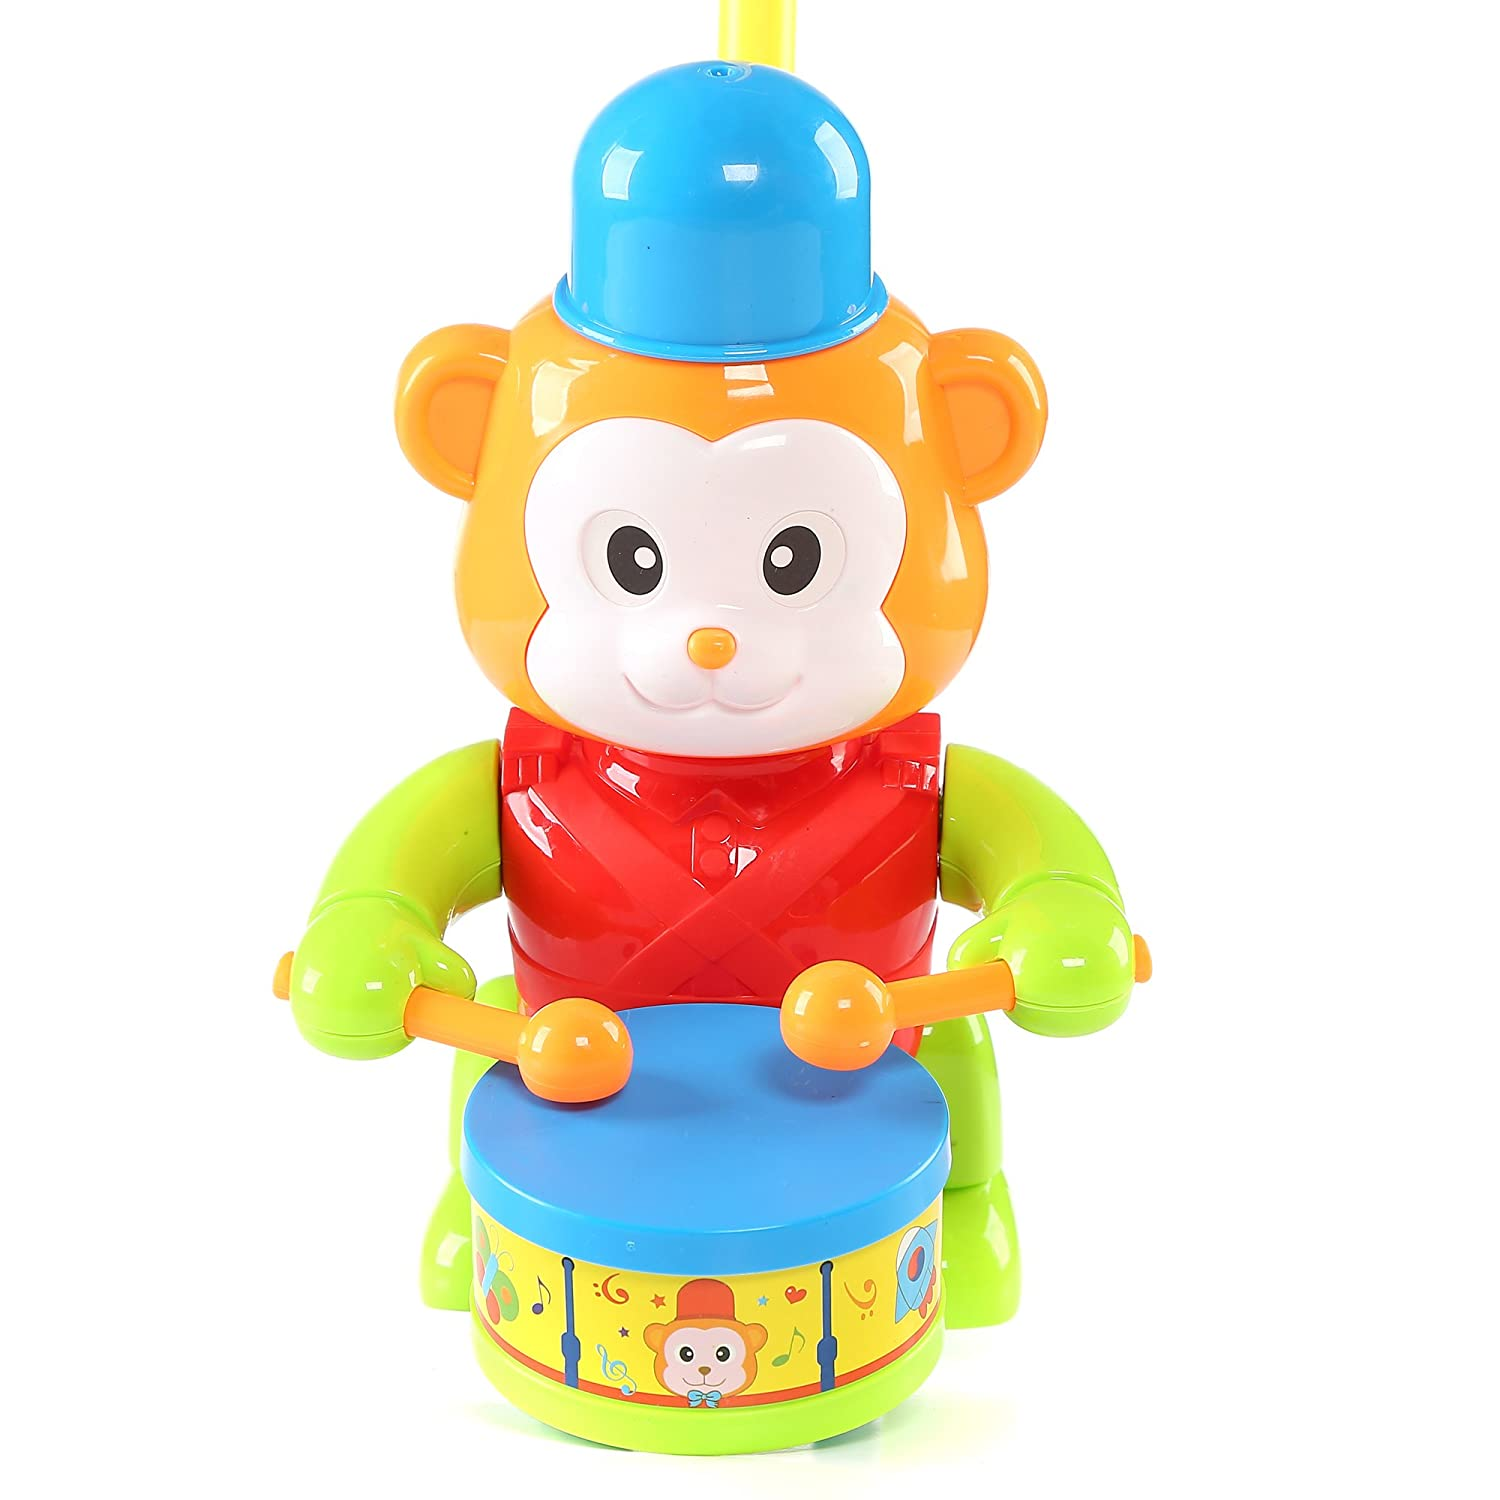 Fun Central BC901 1 Pc 8.5 Inches Monkey Push Toy Pushing Toy for Kids Outdoor Push Toys Classic Push and Pull Toys Push Around Toy for Baptism Birthday and Party Prizes